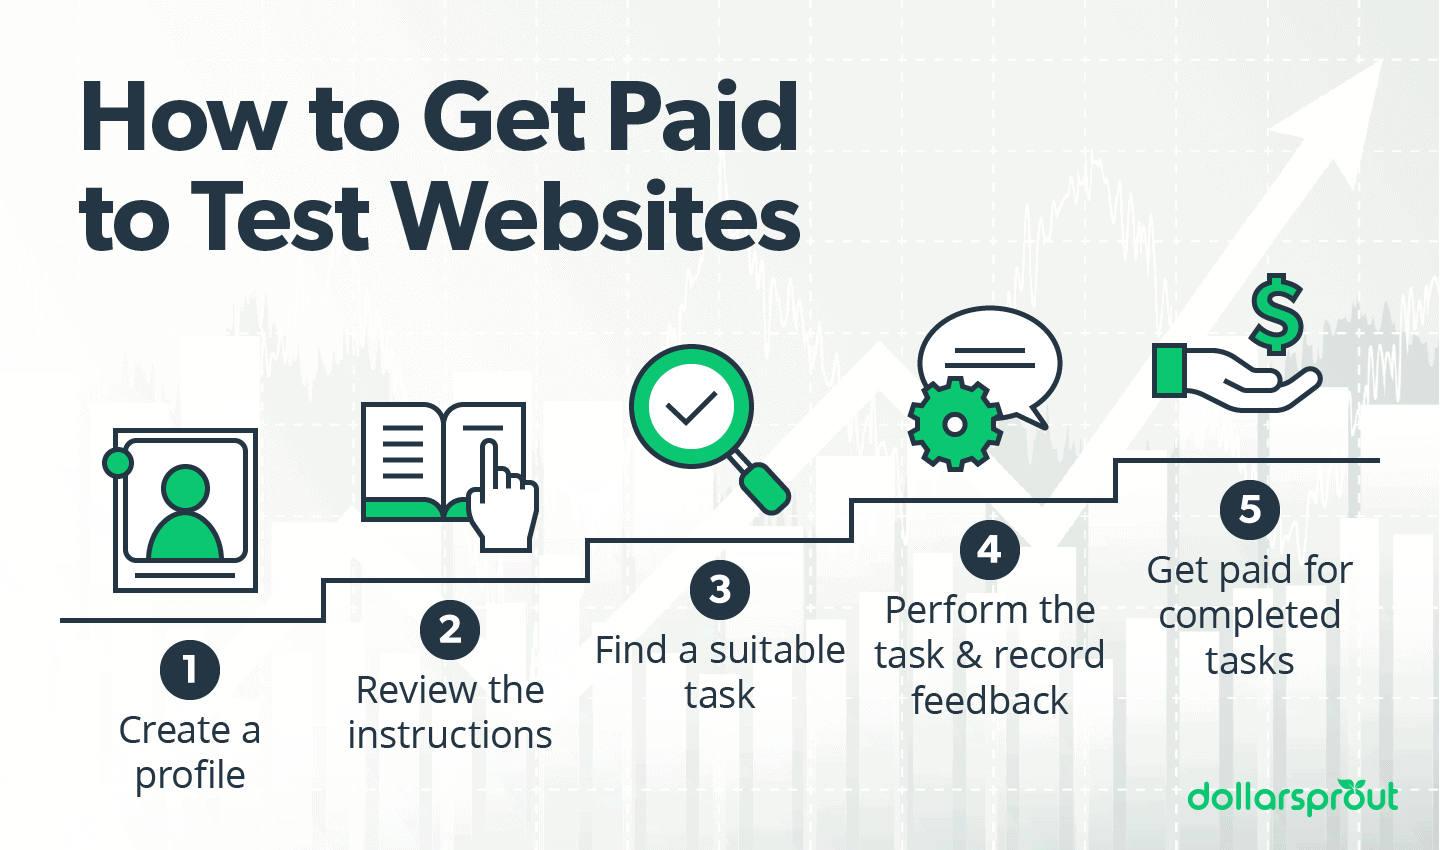 How to Get Paid to Test Websites